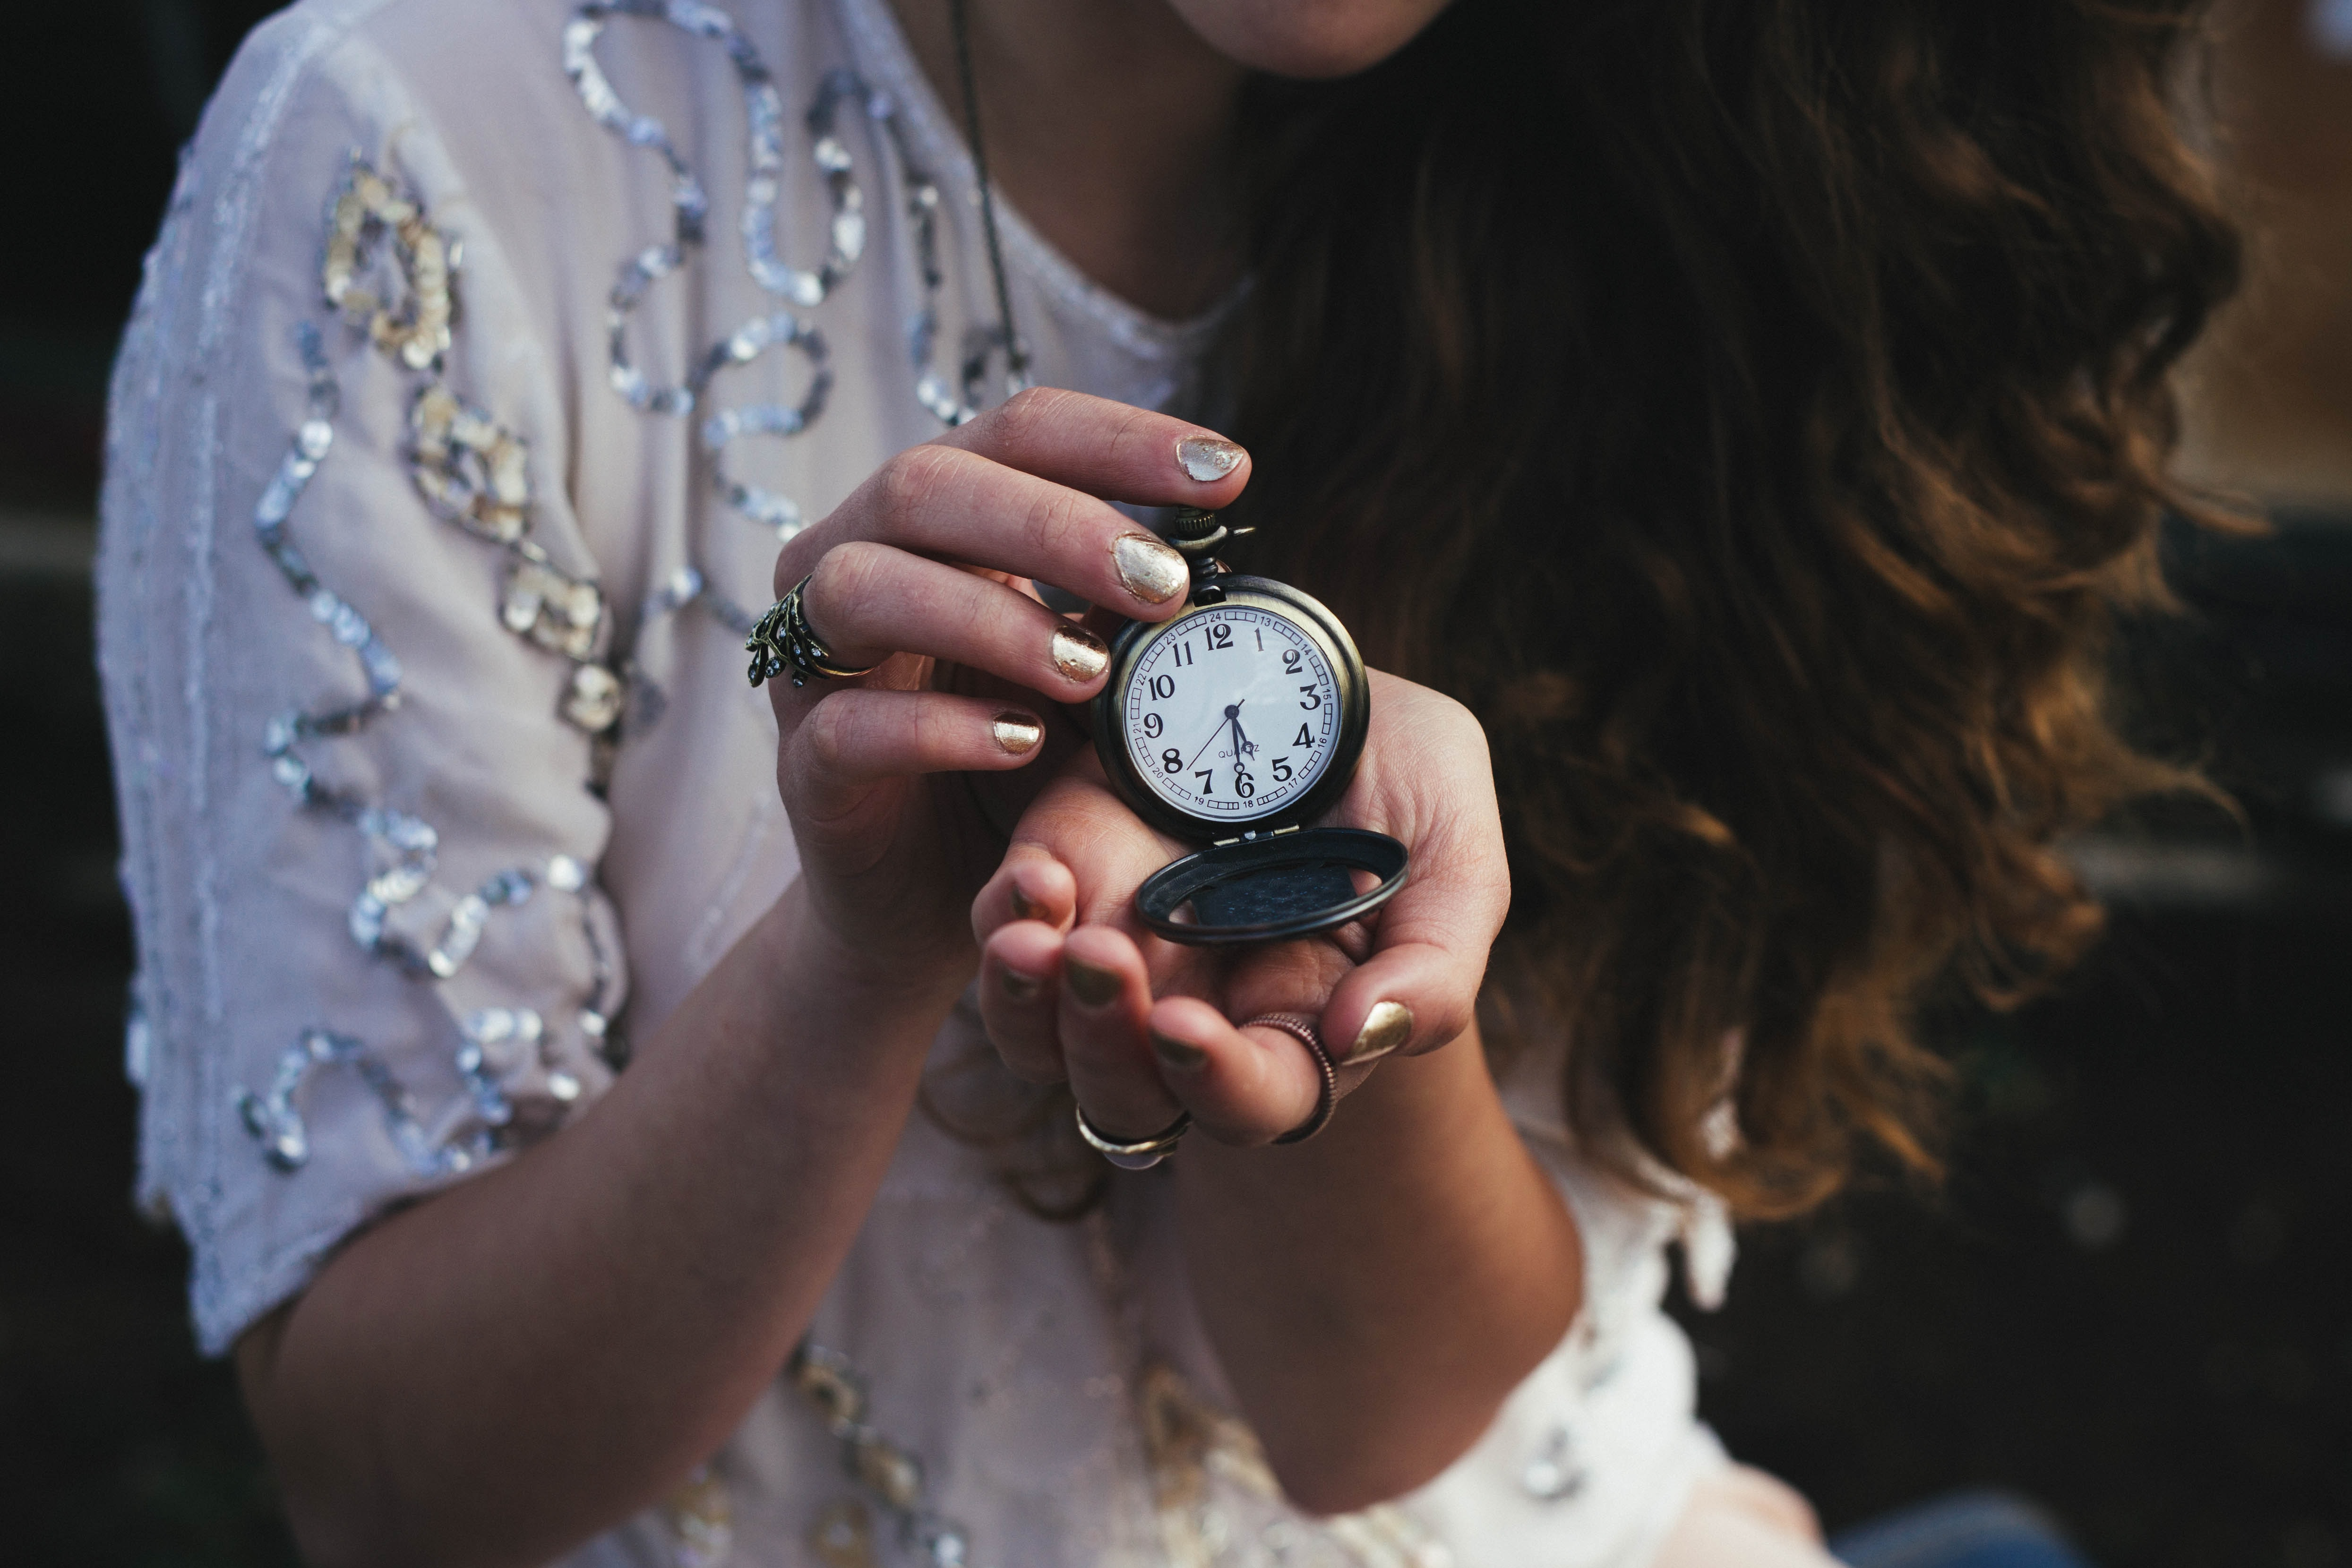 A woman holding an old pocket watch